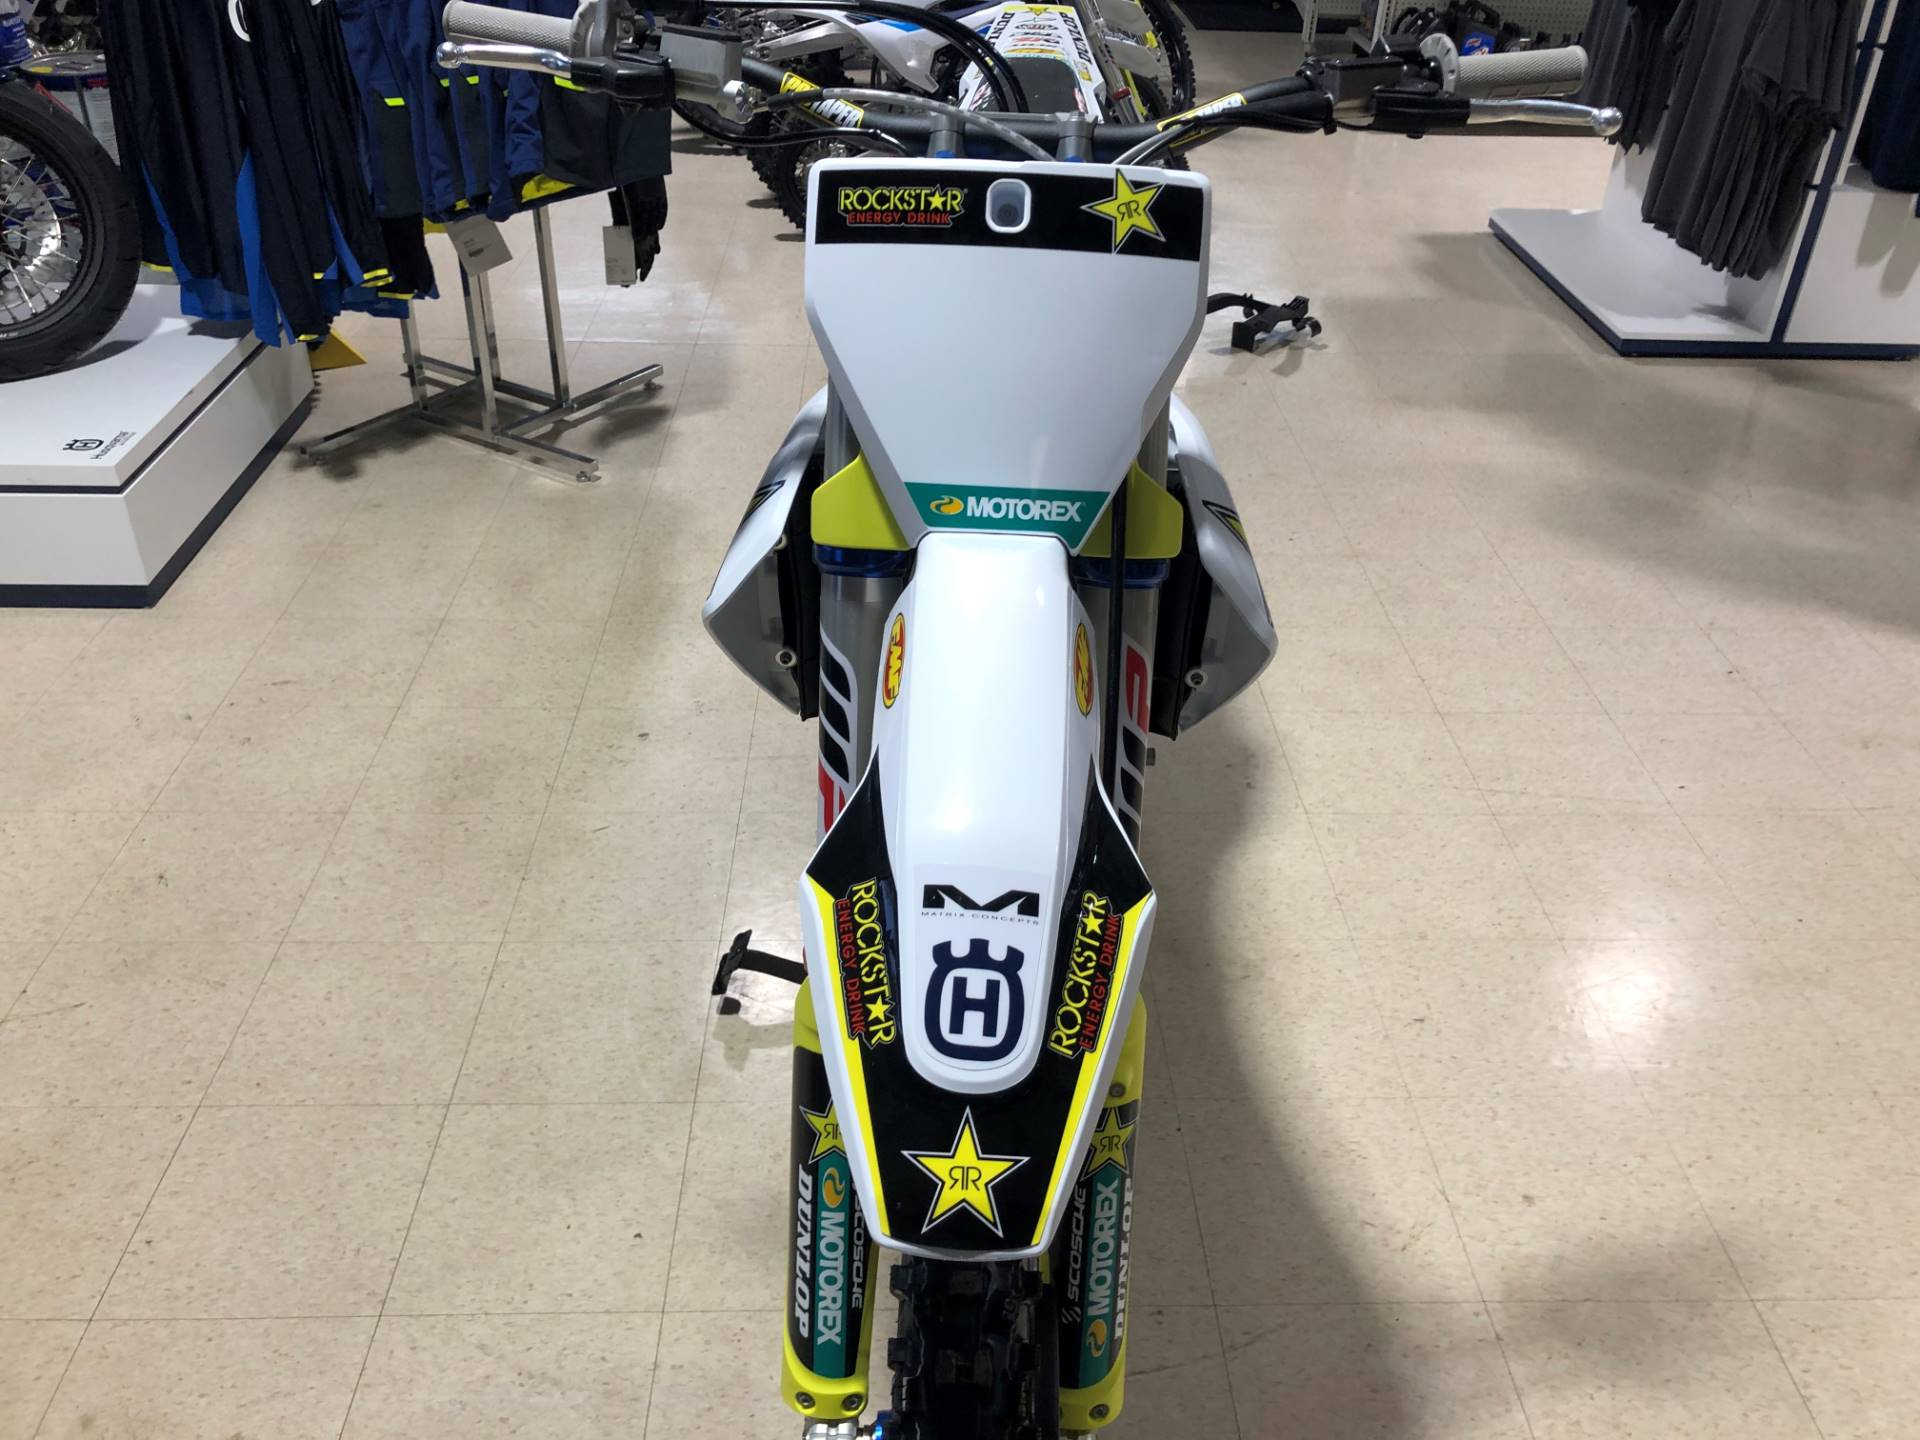 2020 Husqvarna FC 450 Rockstar Edition in Slovan, Pennsylvania - Photo 7